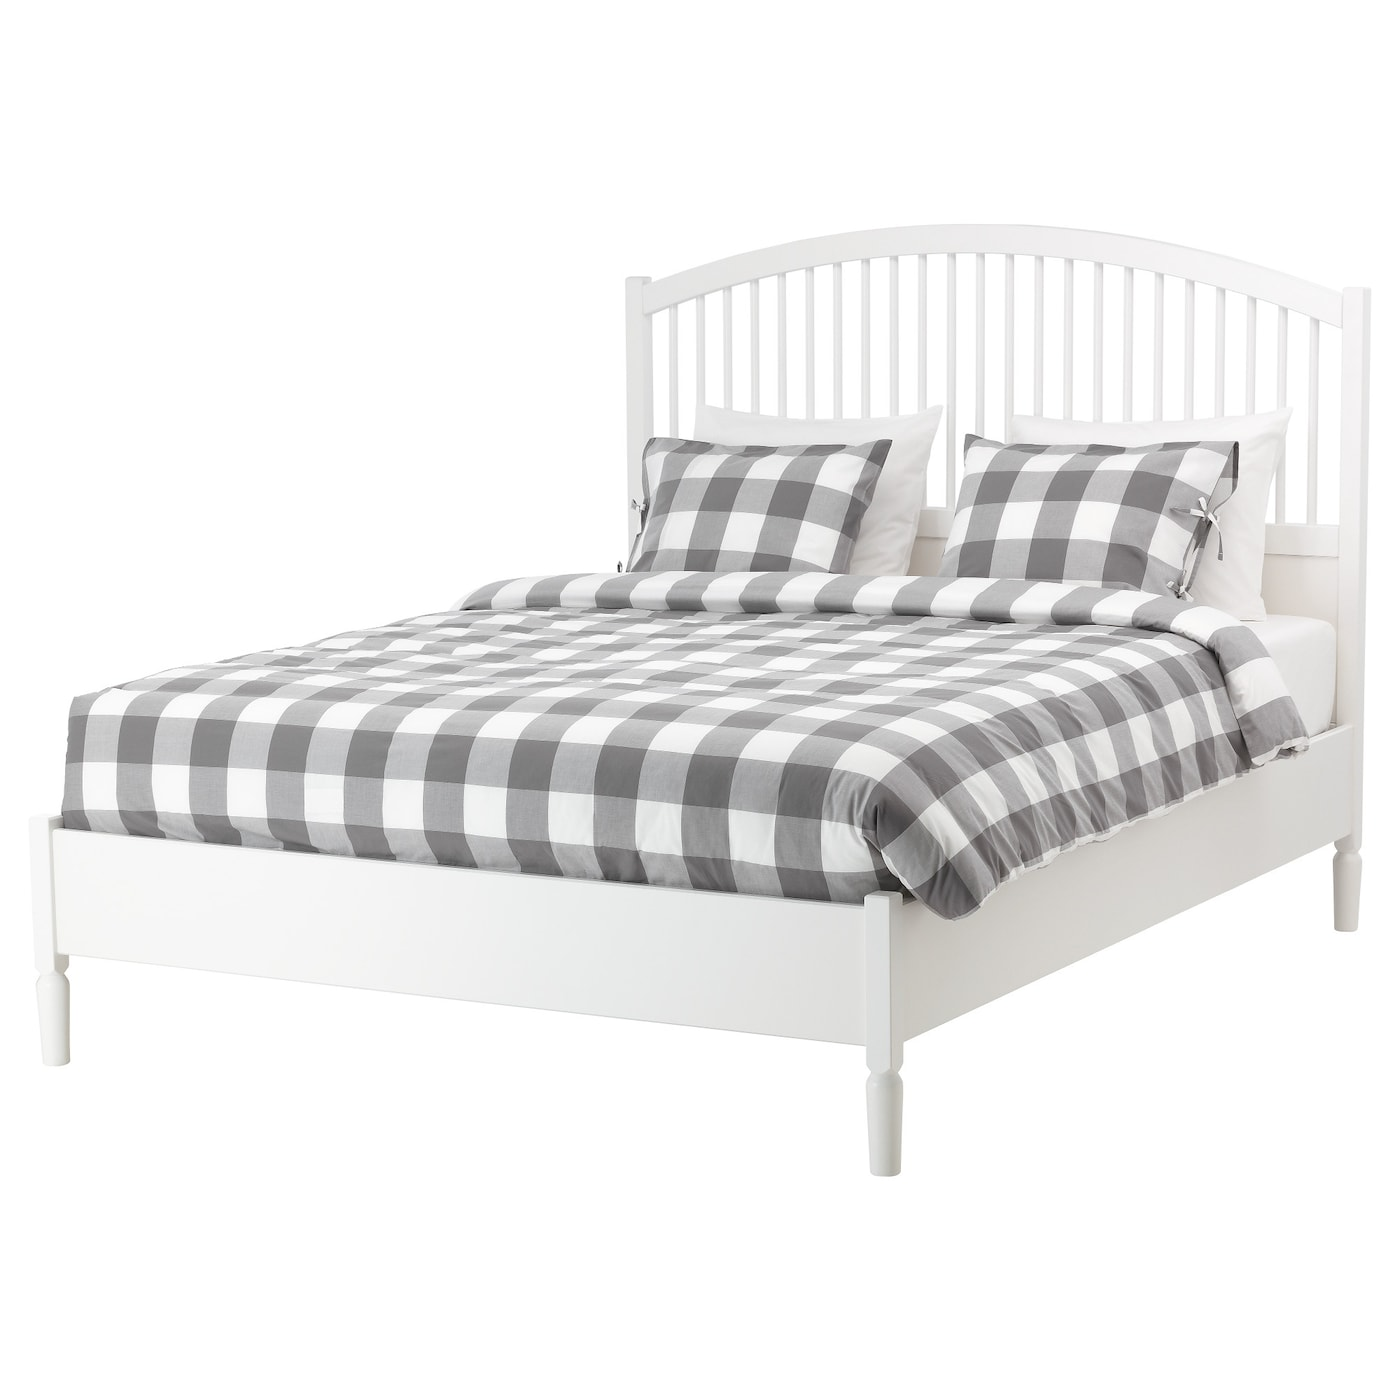 Ikea Etagere Murale Zig Zag ~ IKEA TYSSEDAL bed frame Adjustable bed sides allow you to use